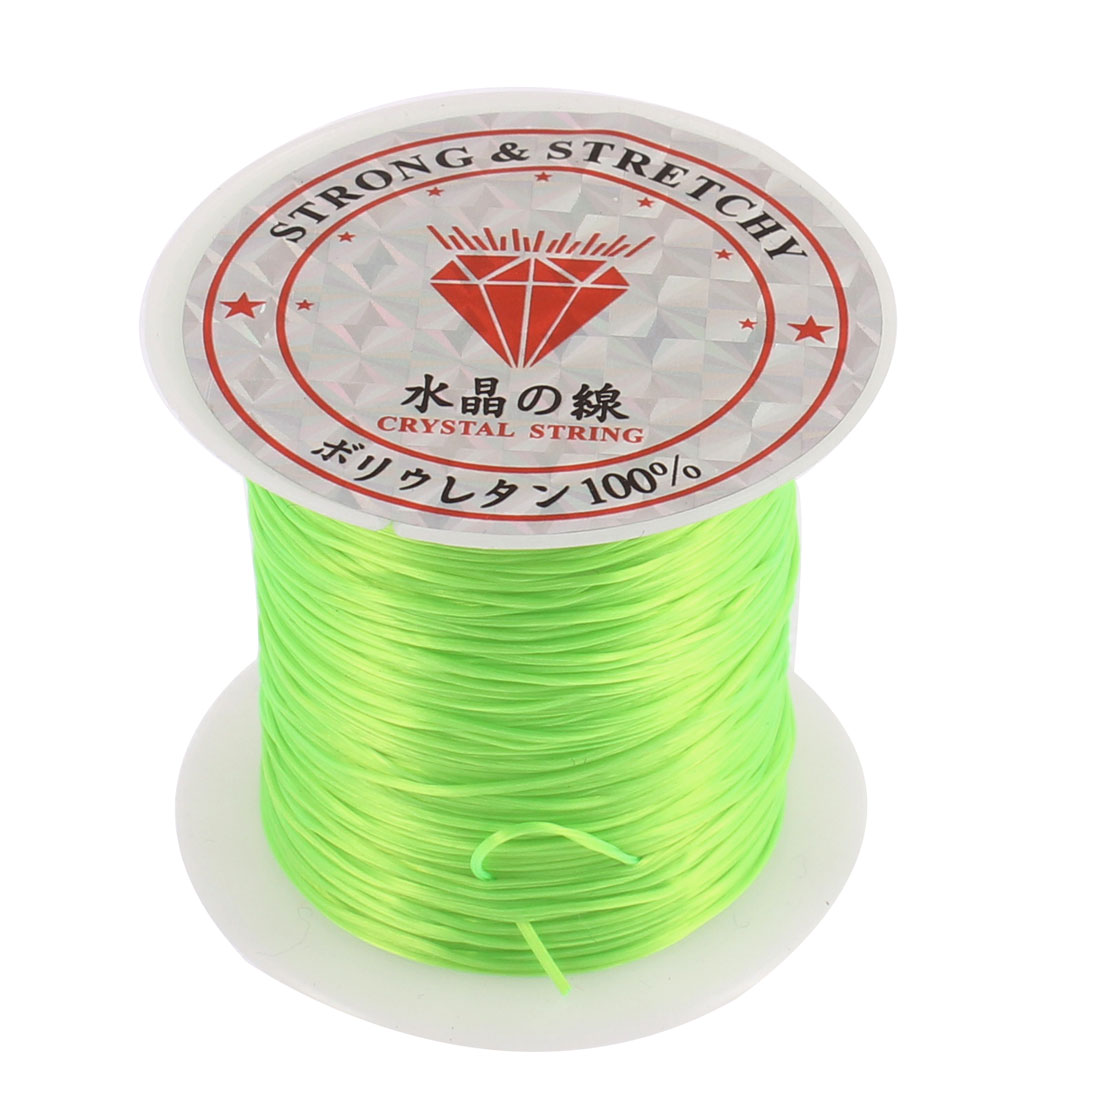 0.5mm DIY Beading Jewelry Making Elastic Cords String Threads Green